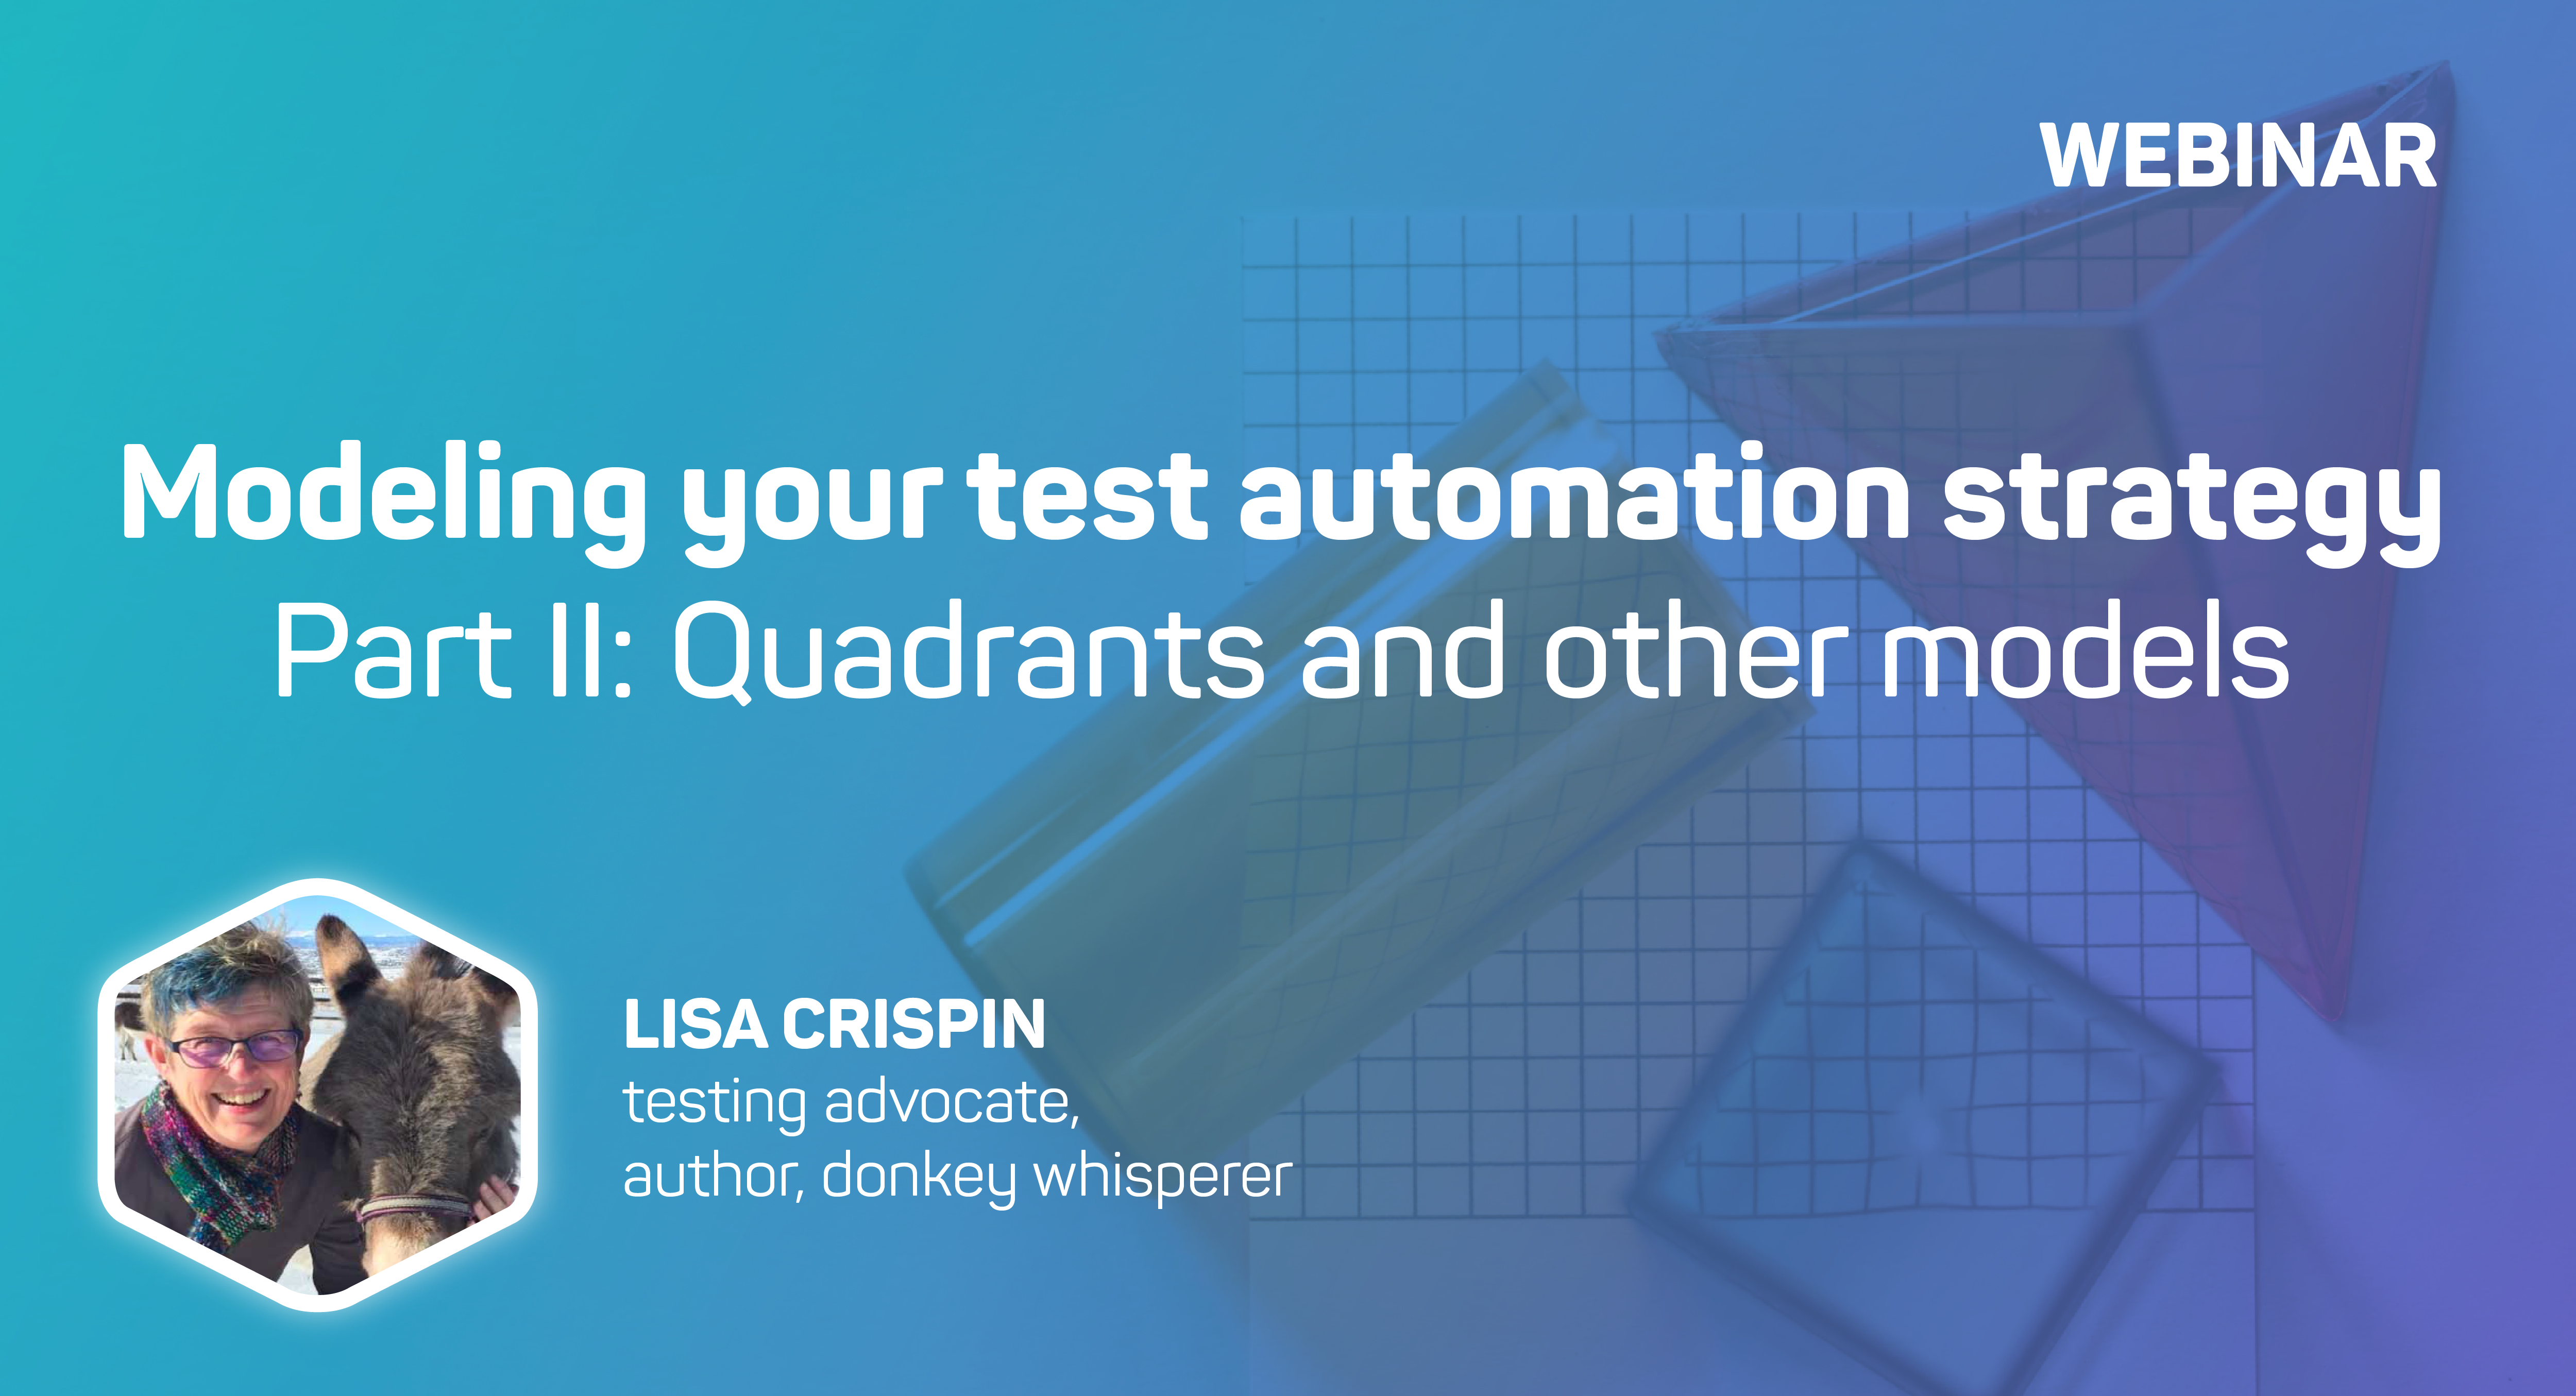 Modeling Your Test Automation Strategy Part 2 | mabl